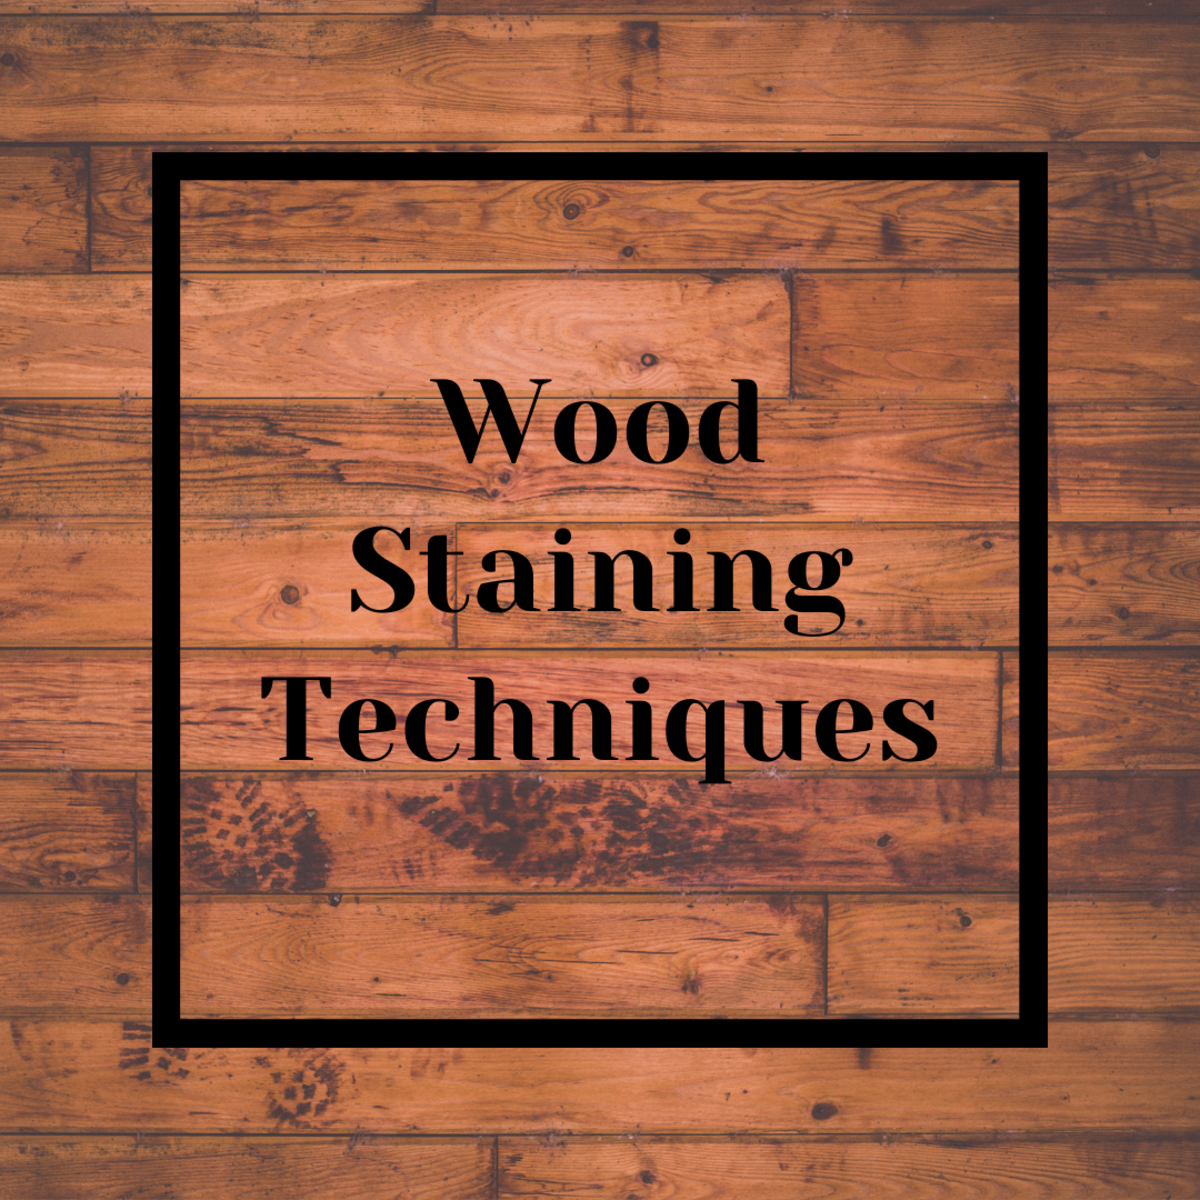 Learn how you can use readily available craft materials to stain wood with excellent results.